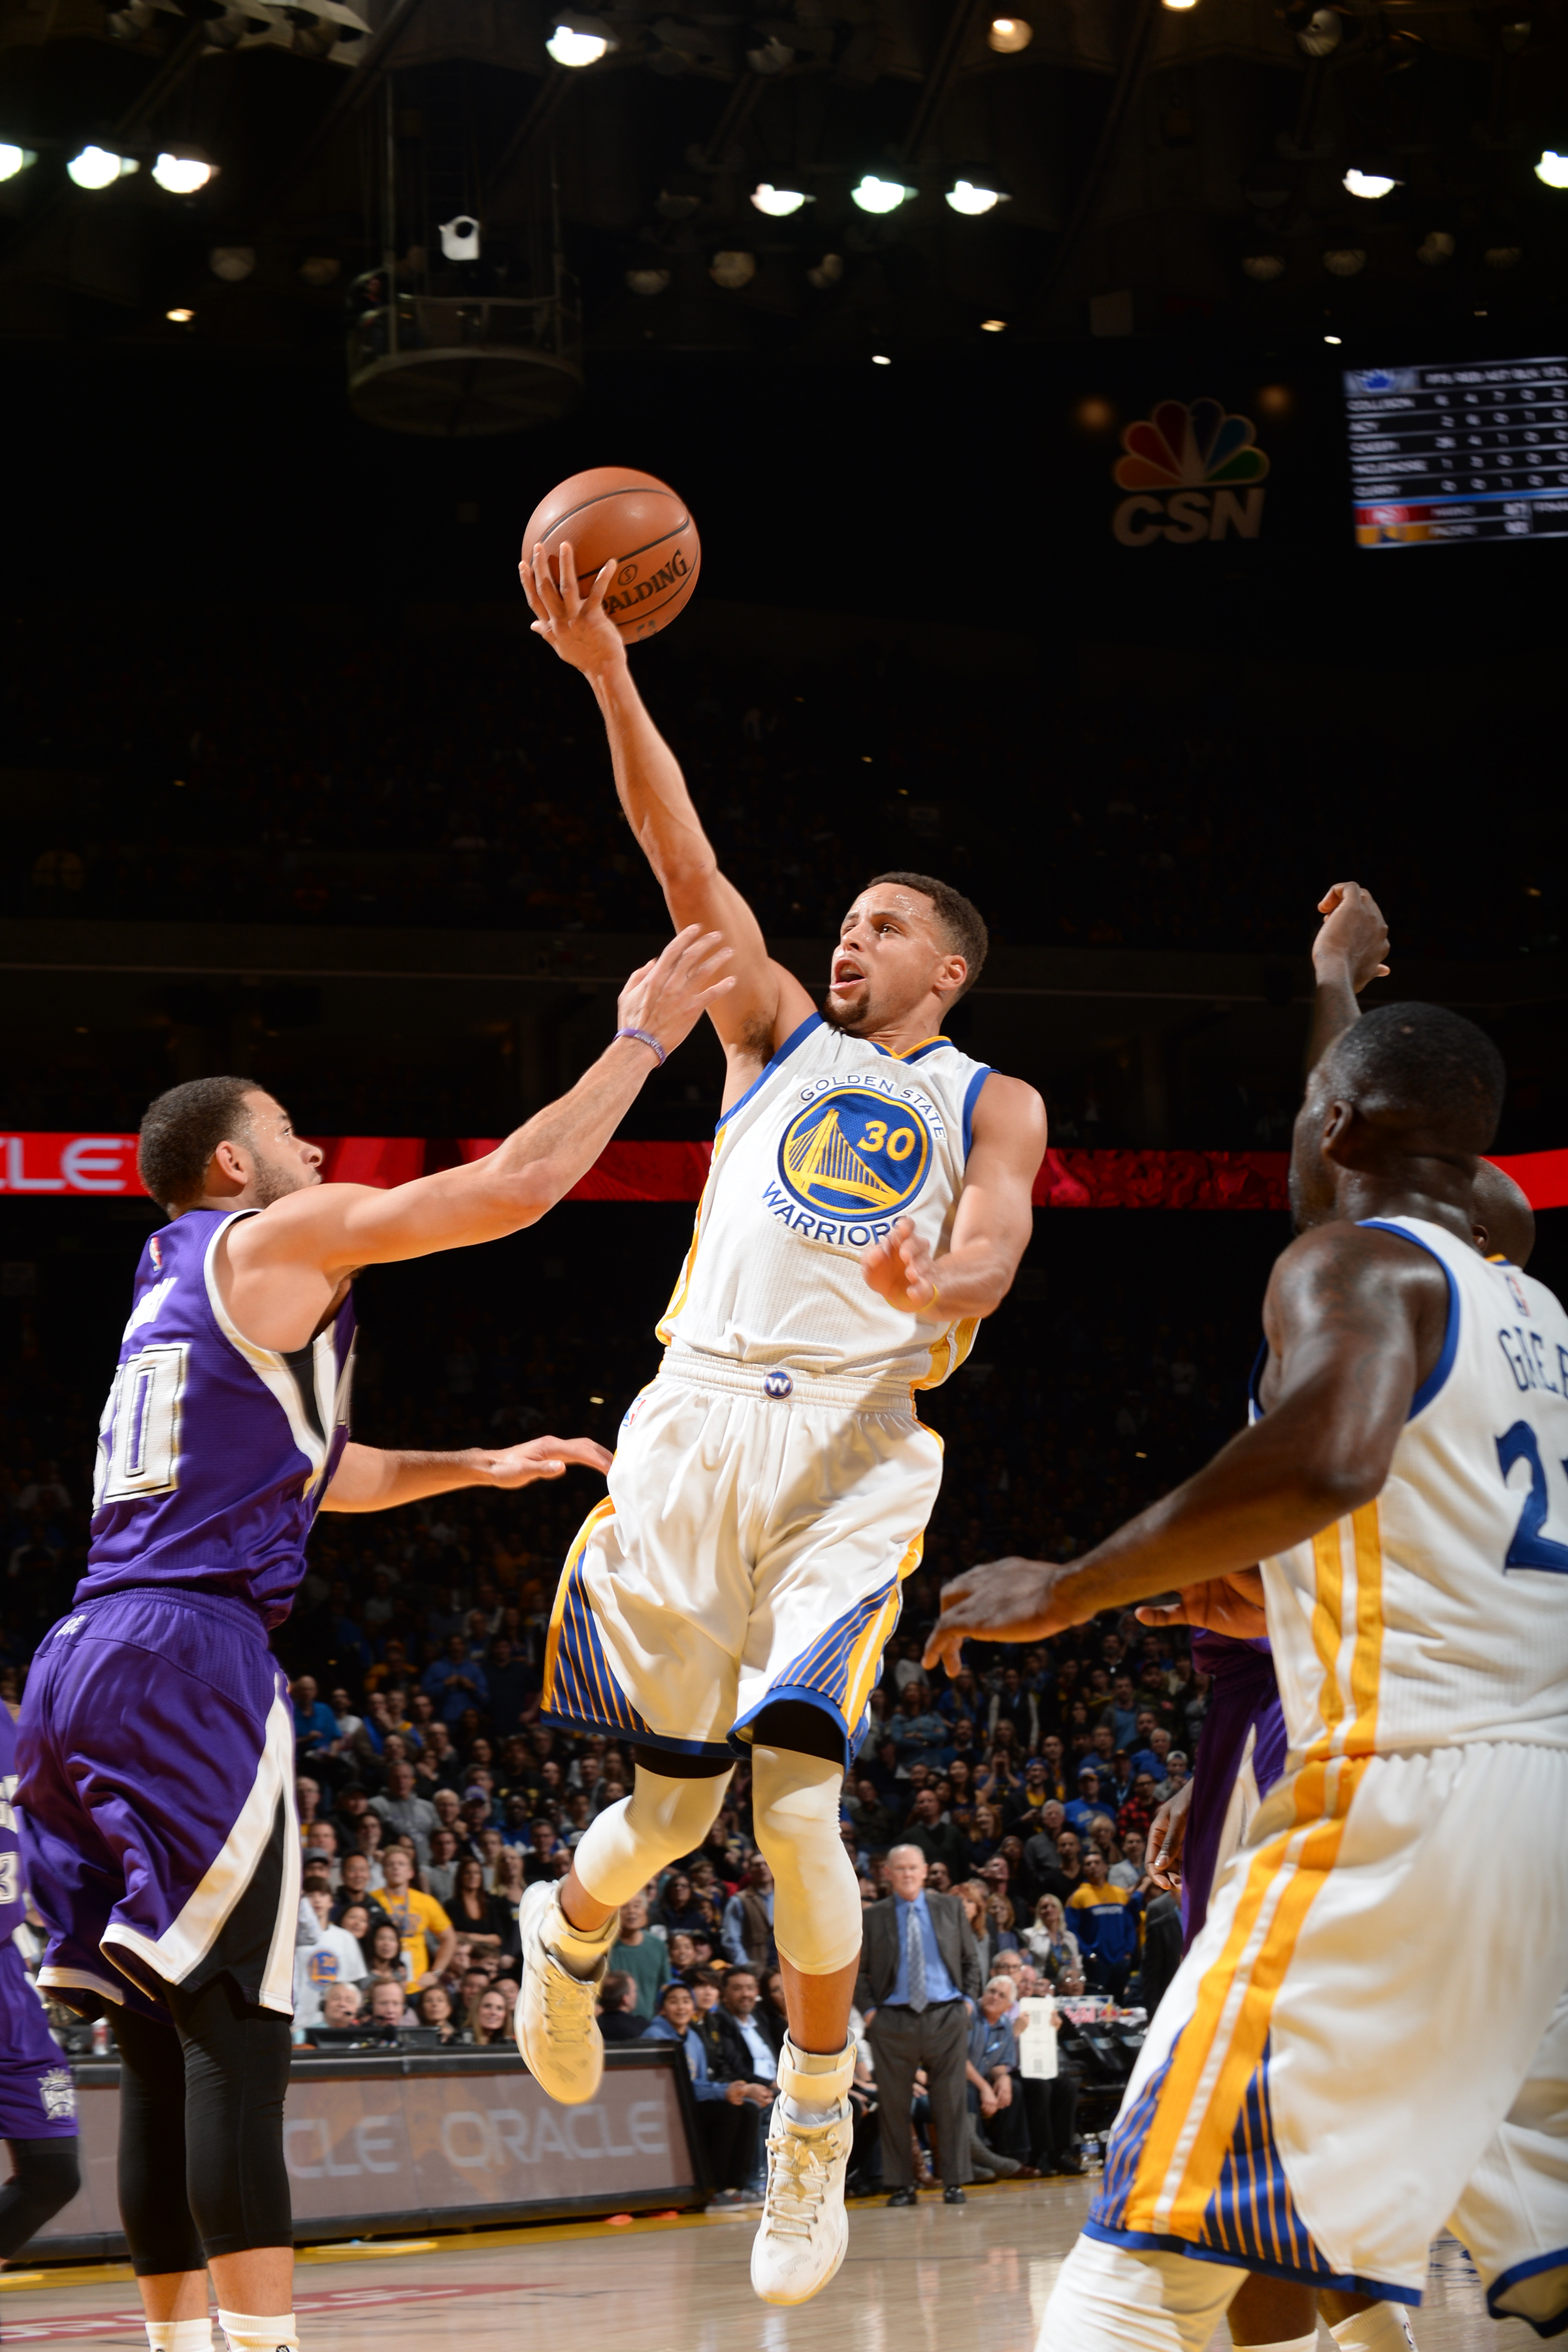 OAKLAND, CA - DECEMBER 28:  Stephen Curry #30 of the Golden State Warriors shoots the ball against the Sacramento Kings on December 28, 2015 at ORACLE Arena in Oakland, California. (Photo by Noah Graham/NBAE via Getty Images)